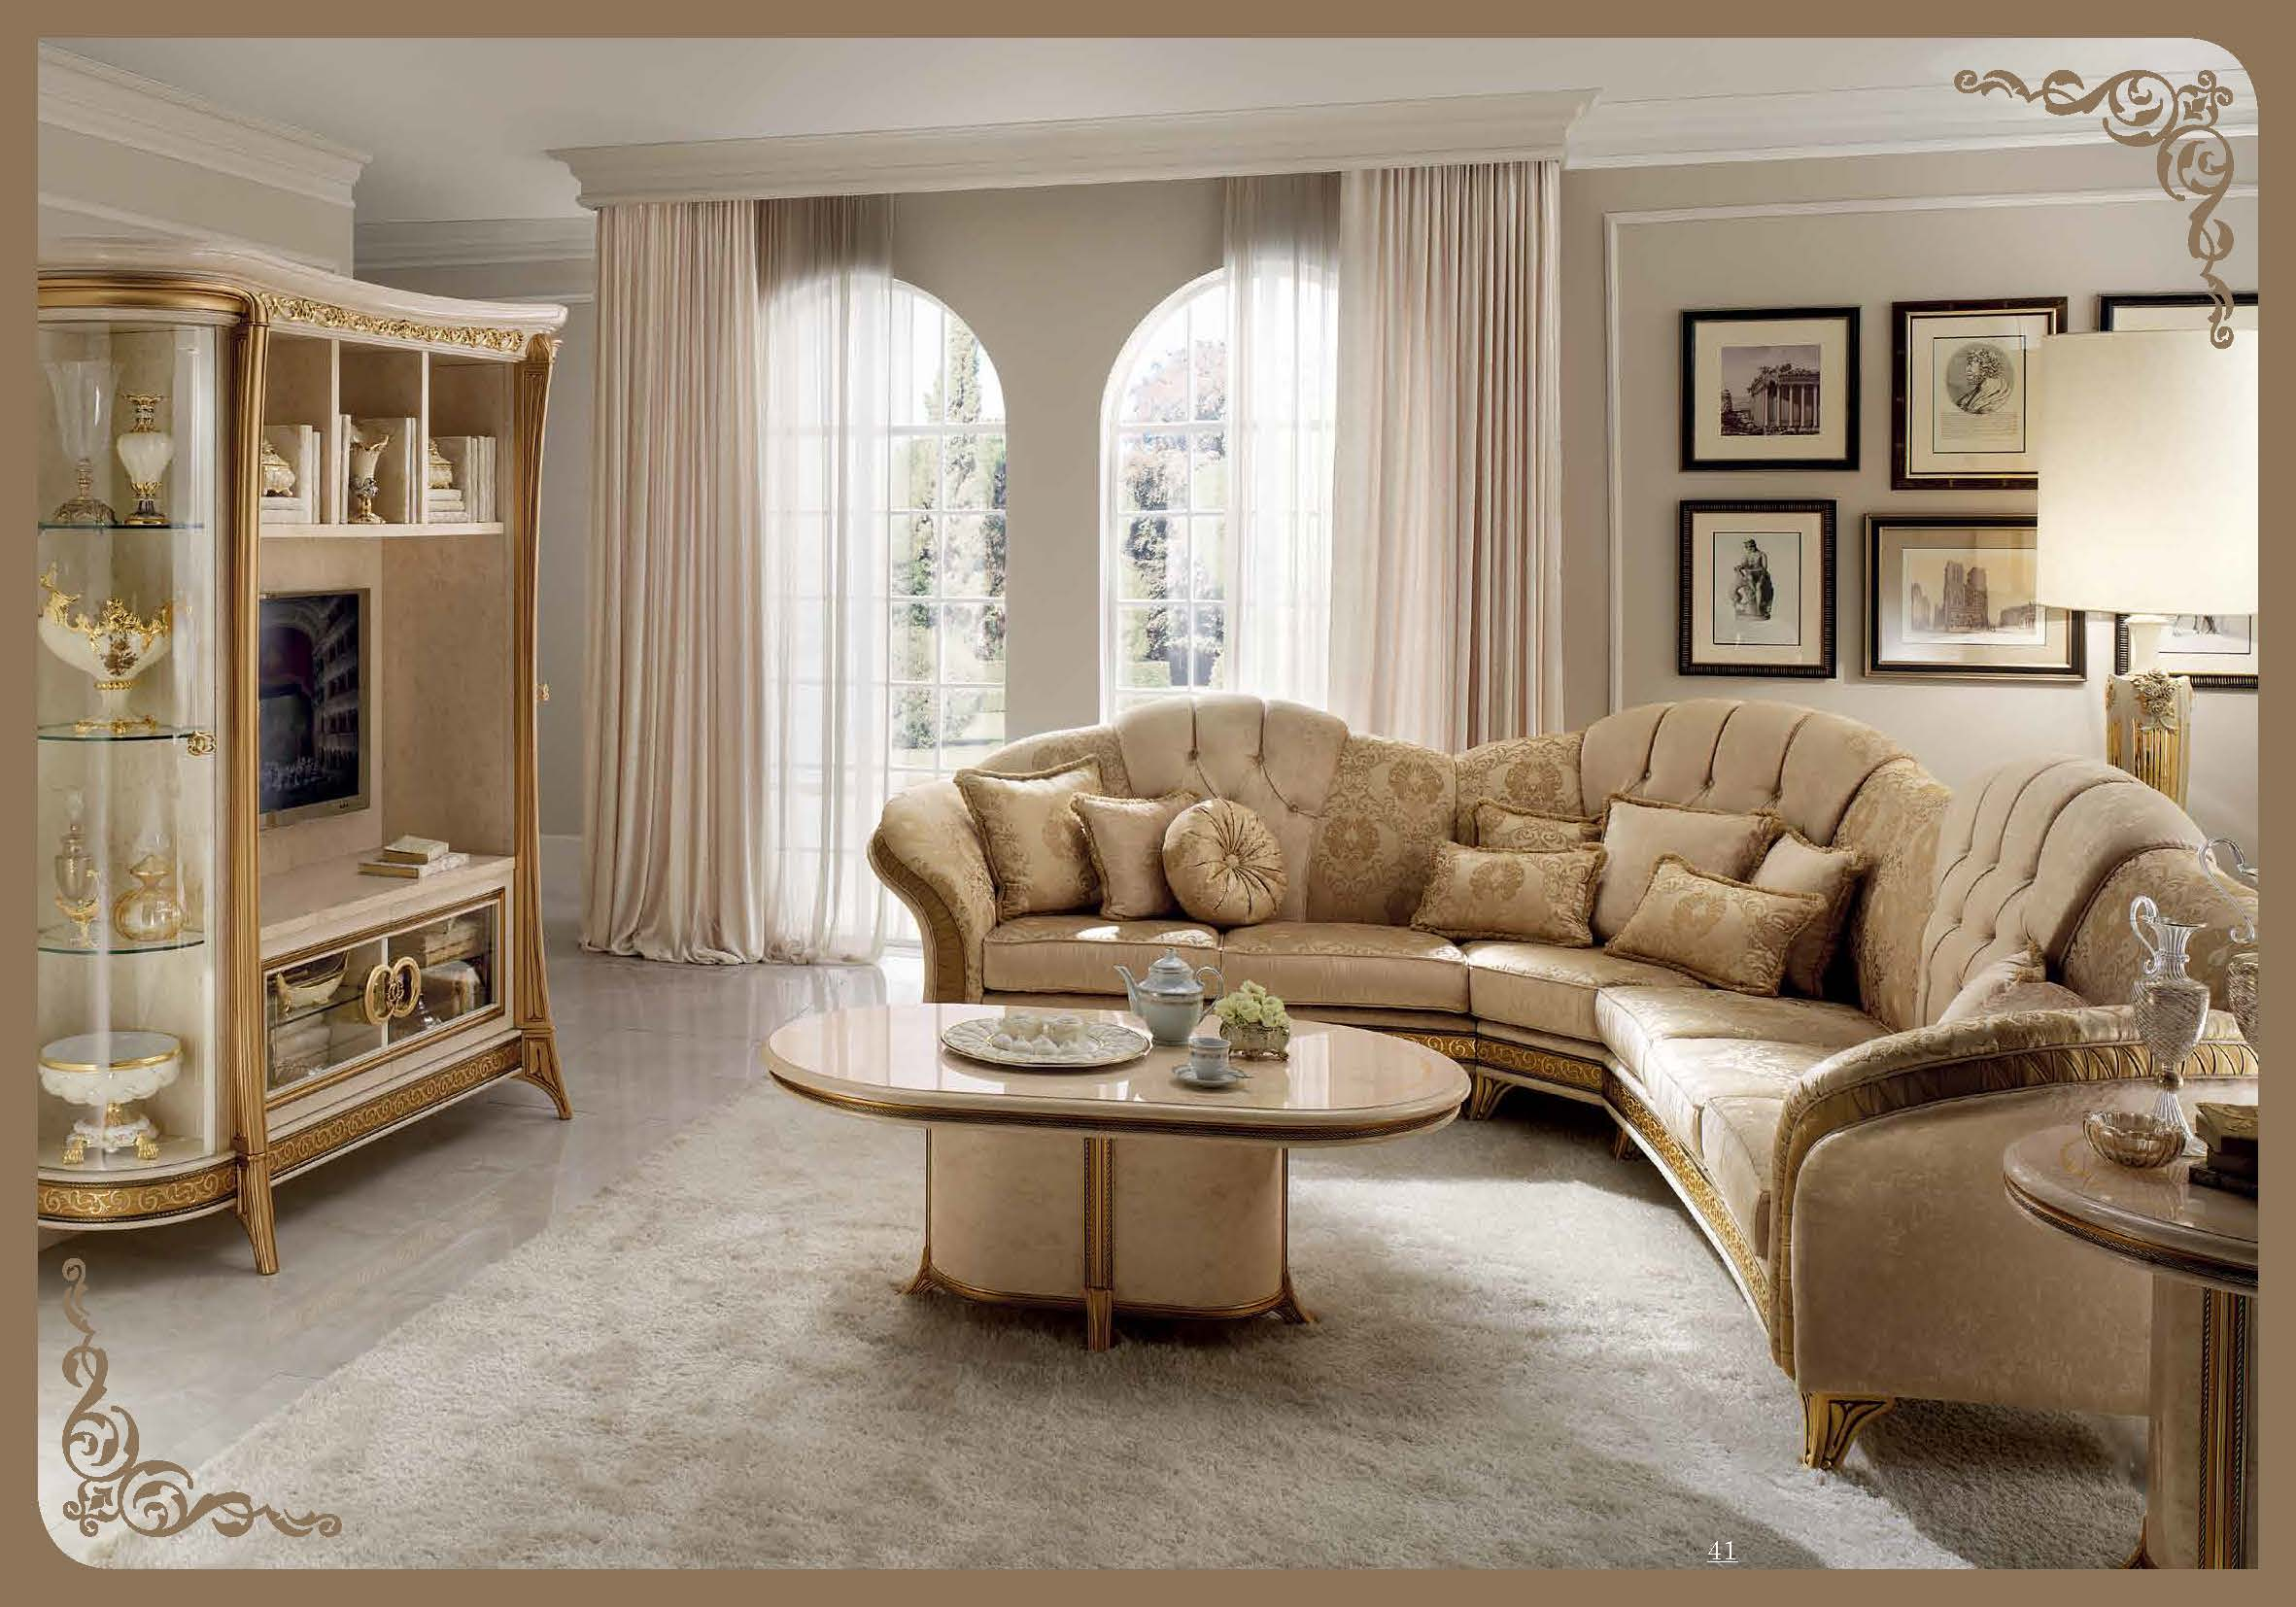 Melodia Lounge, Arredoclassic Living Room, Italy, Brands